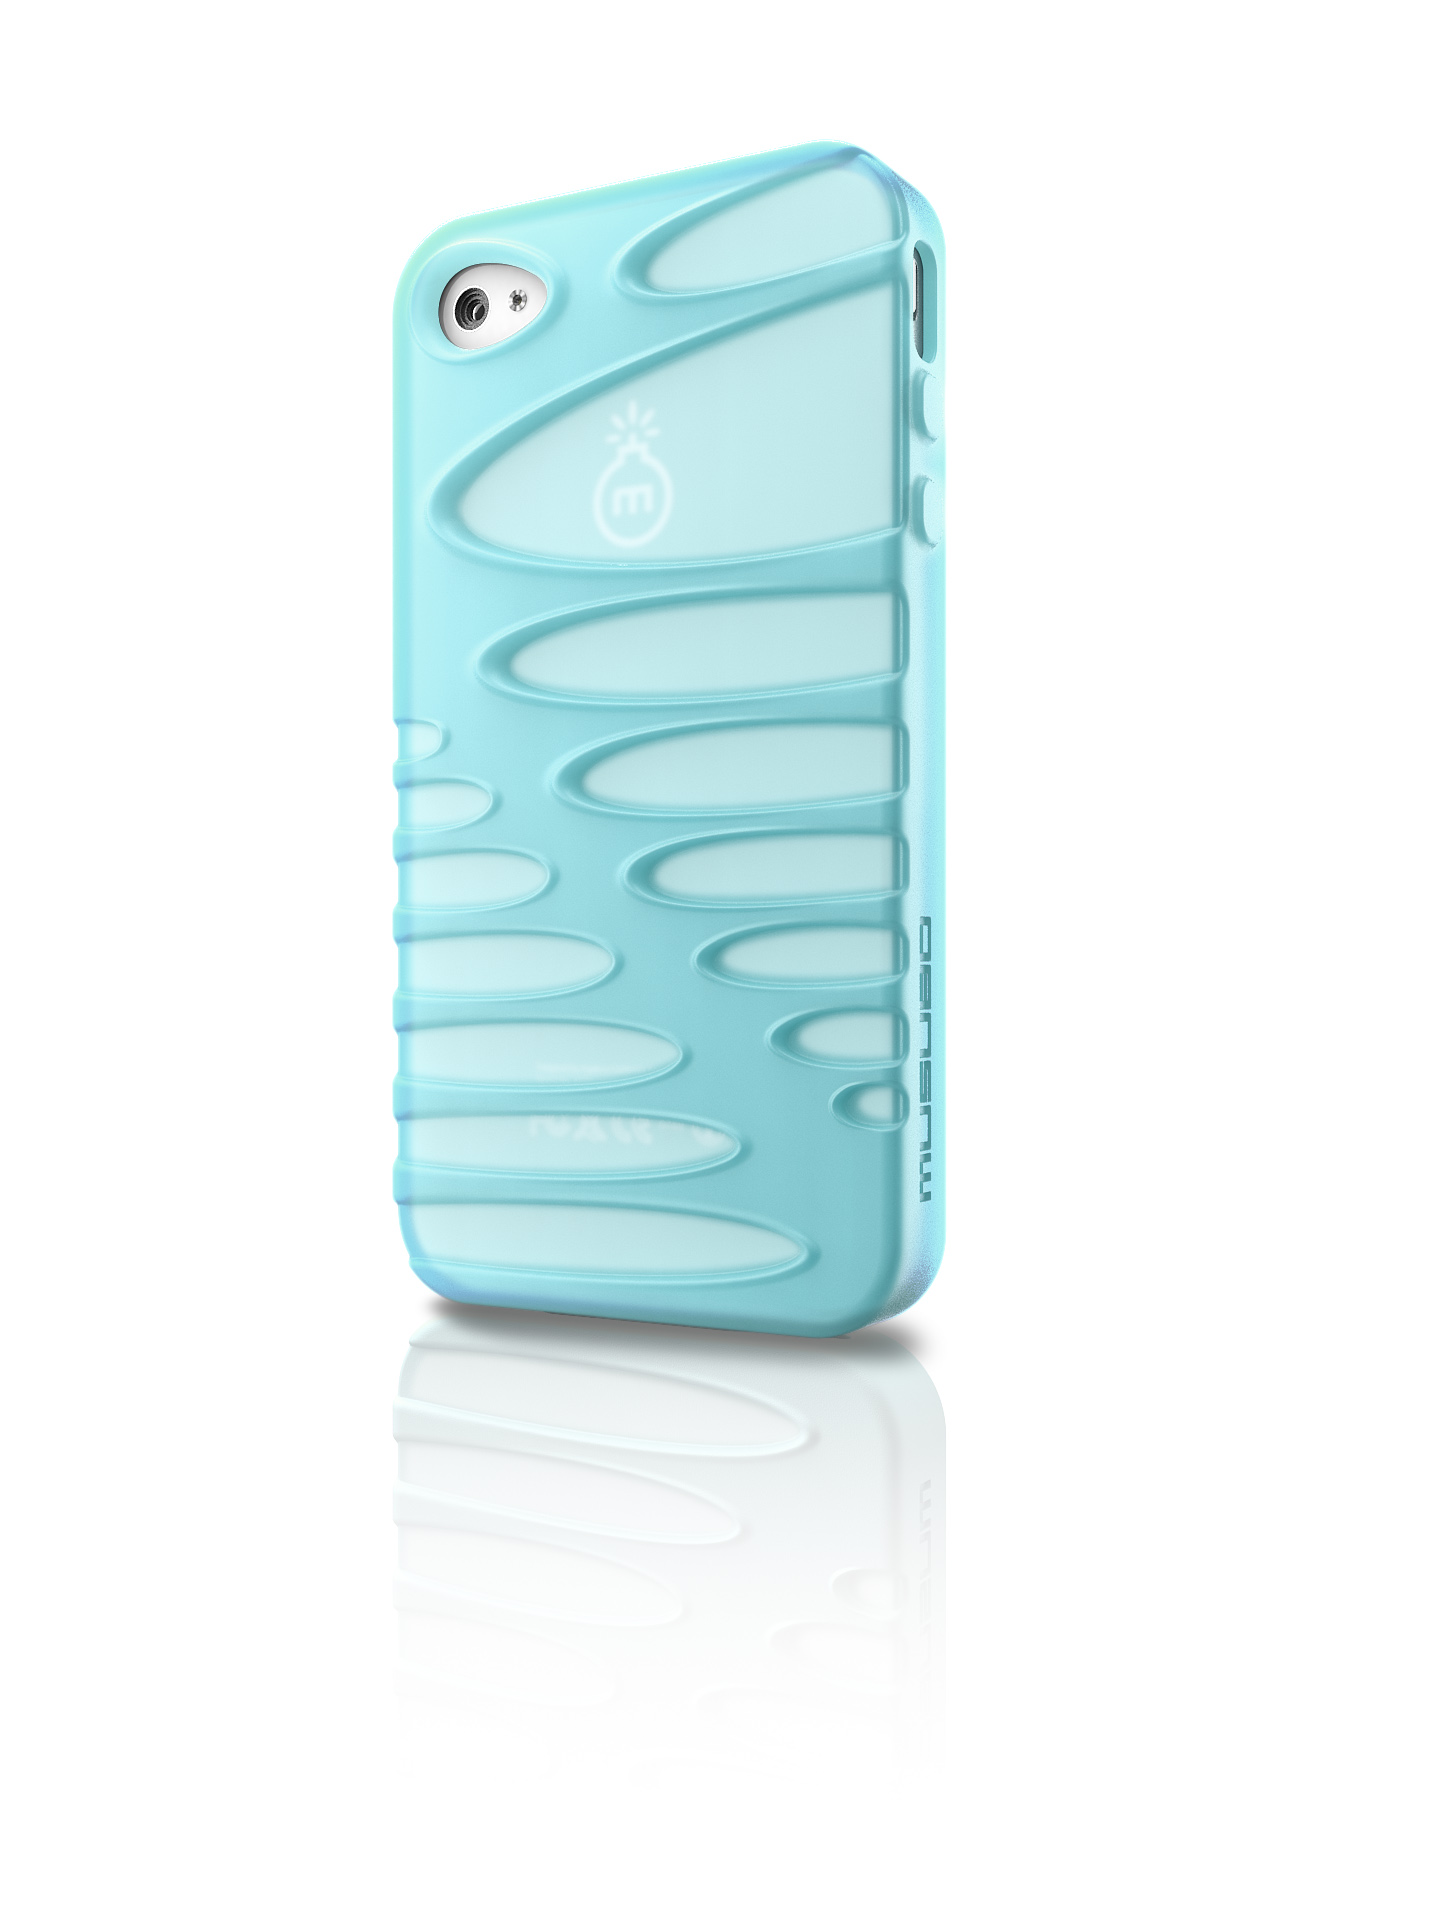 original-musubo-case-sexy-iphone-4s4g-baby-blue-retail